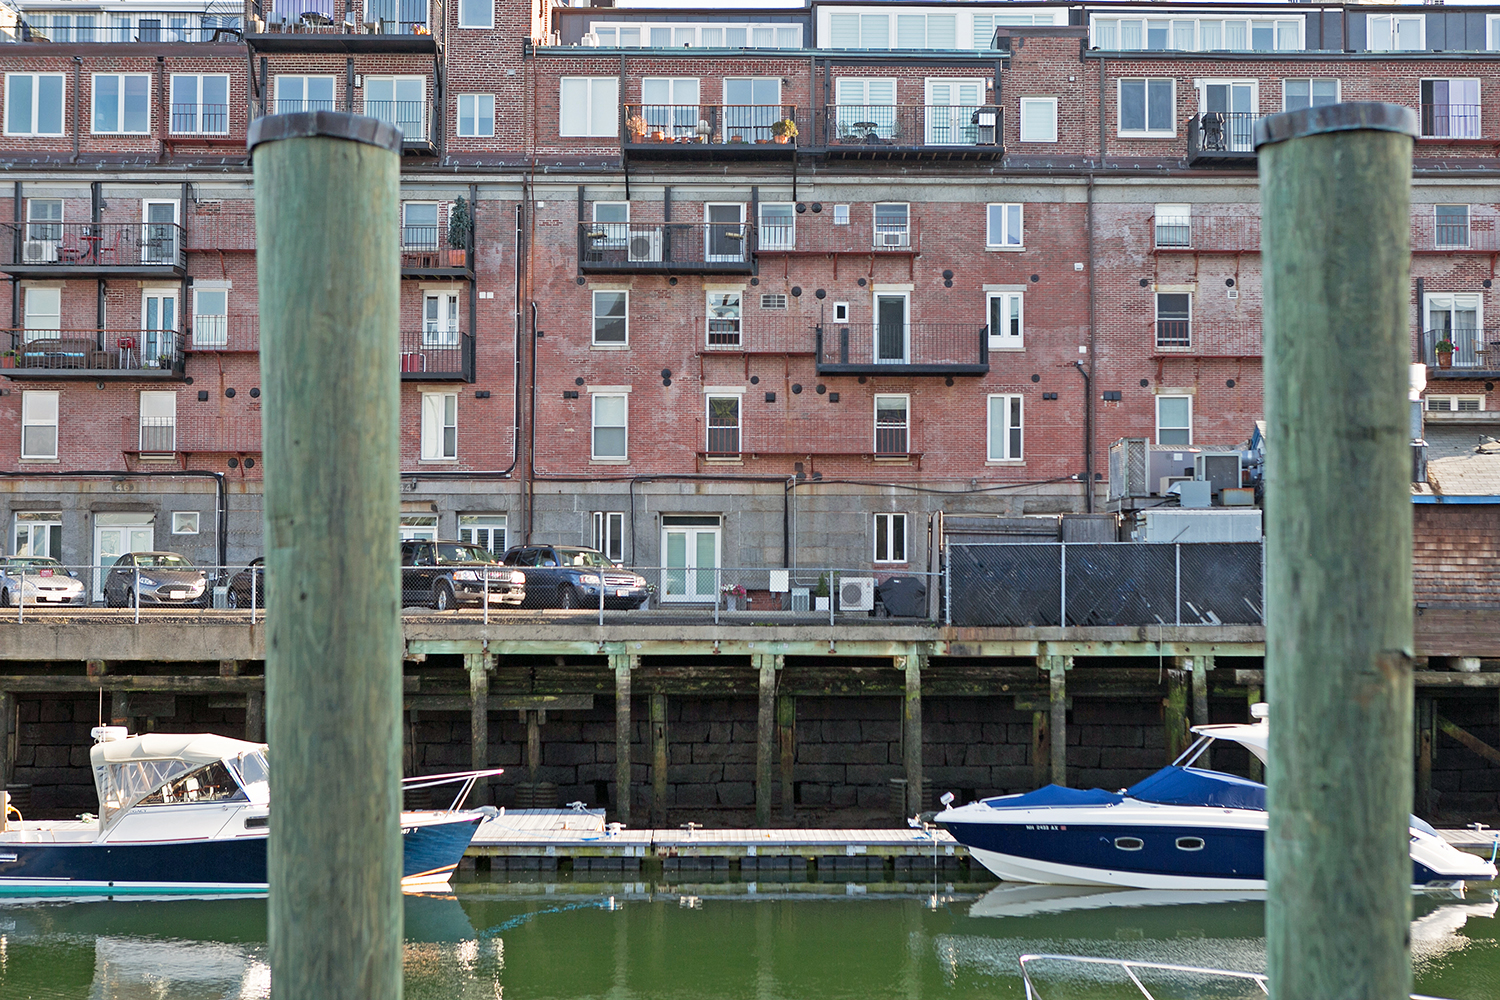 Condos built on a wharf are pictured in Boston's North End, June 6, 2016. (Photo by Lauren Owens Lambert/GroundTruth)